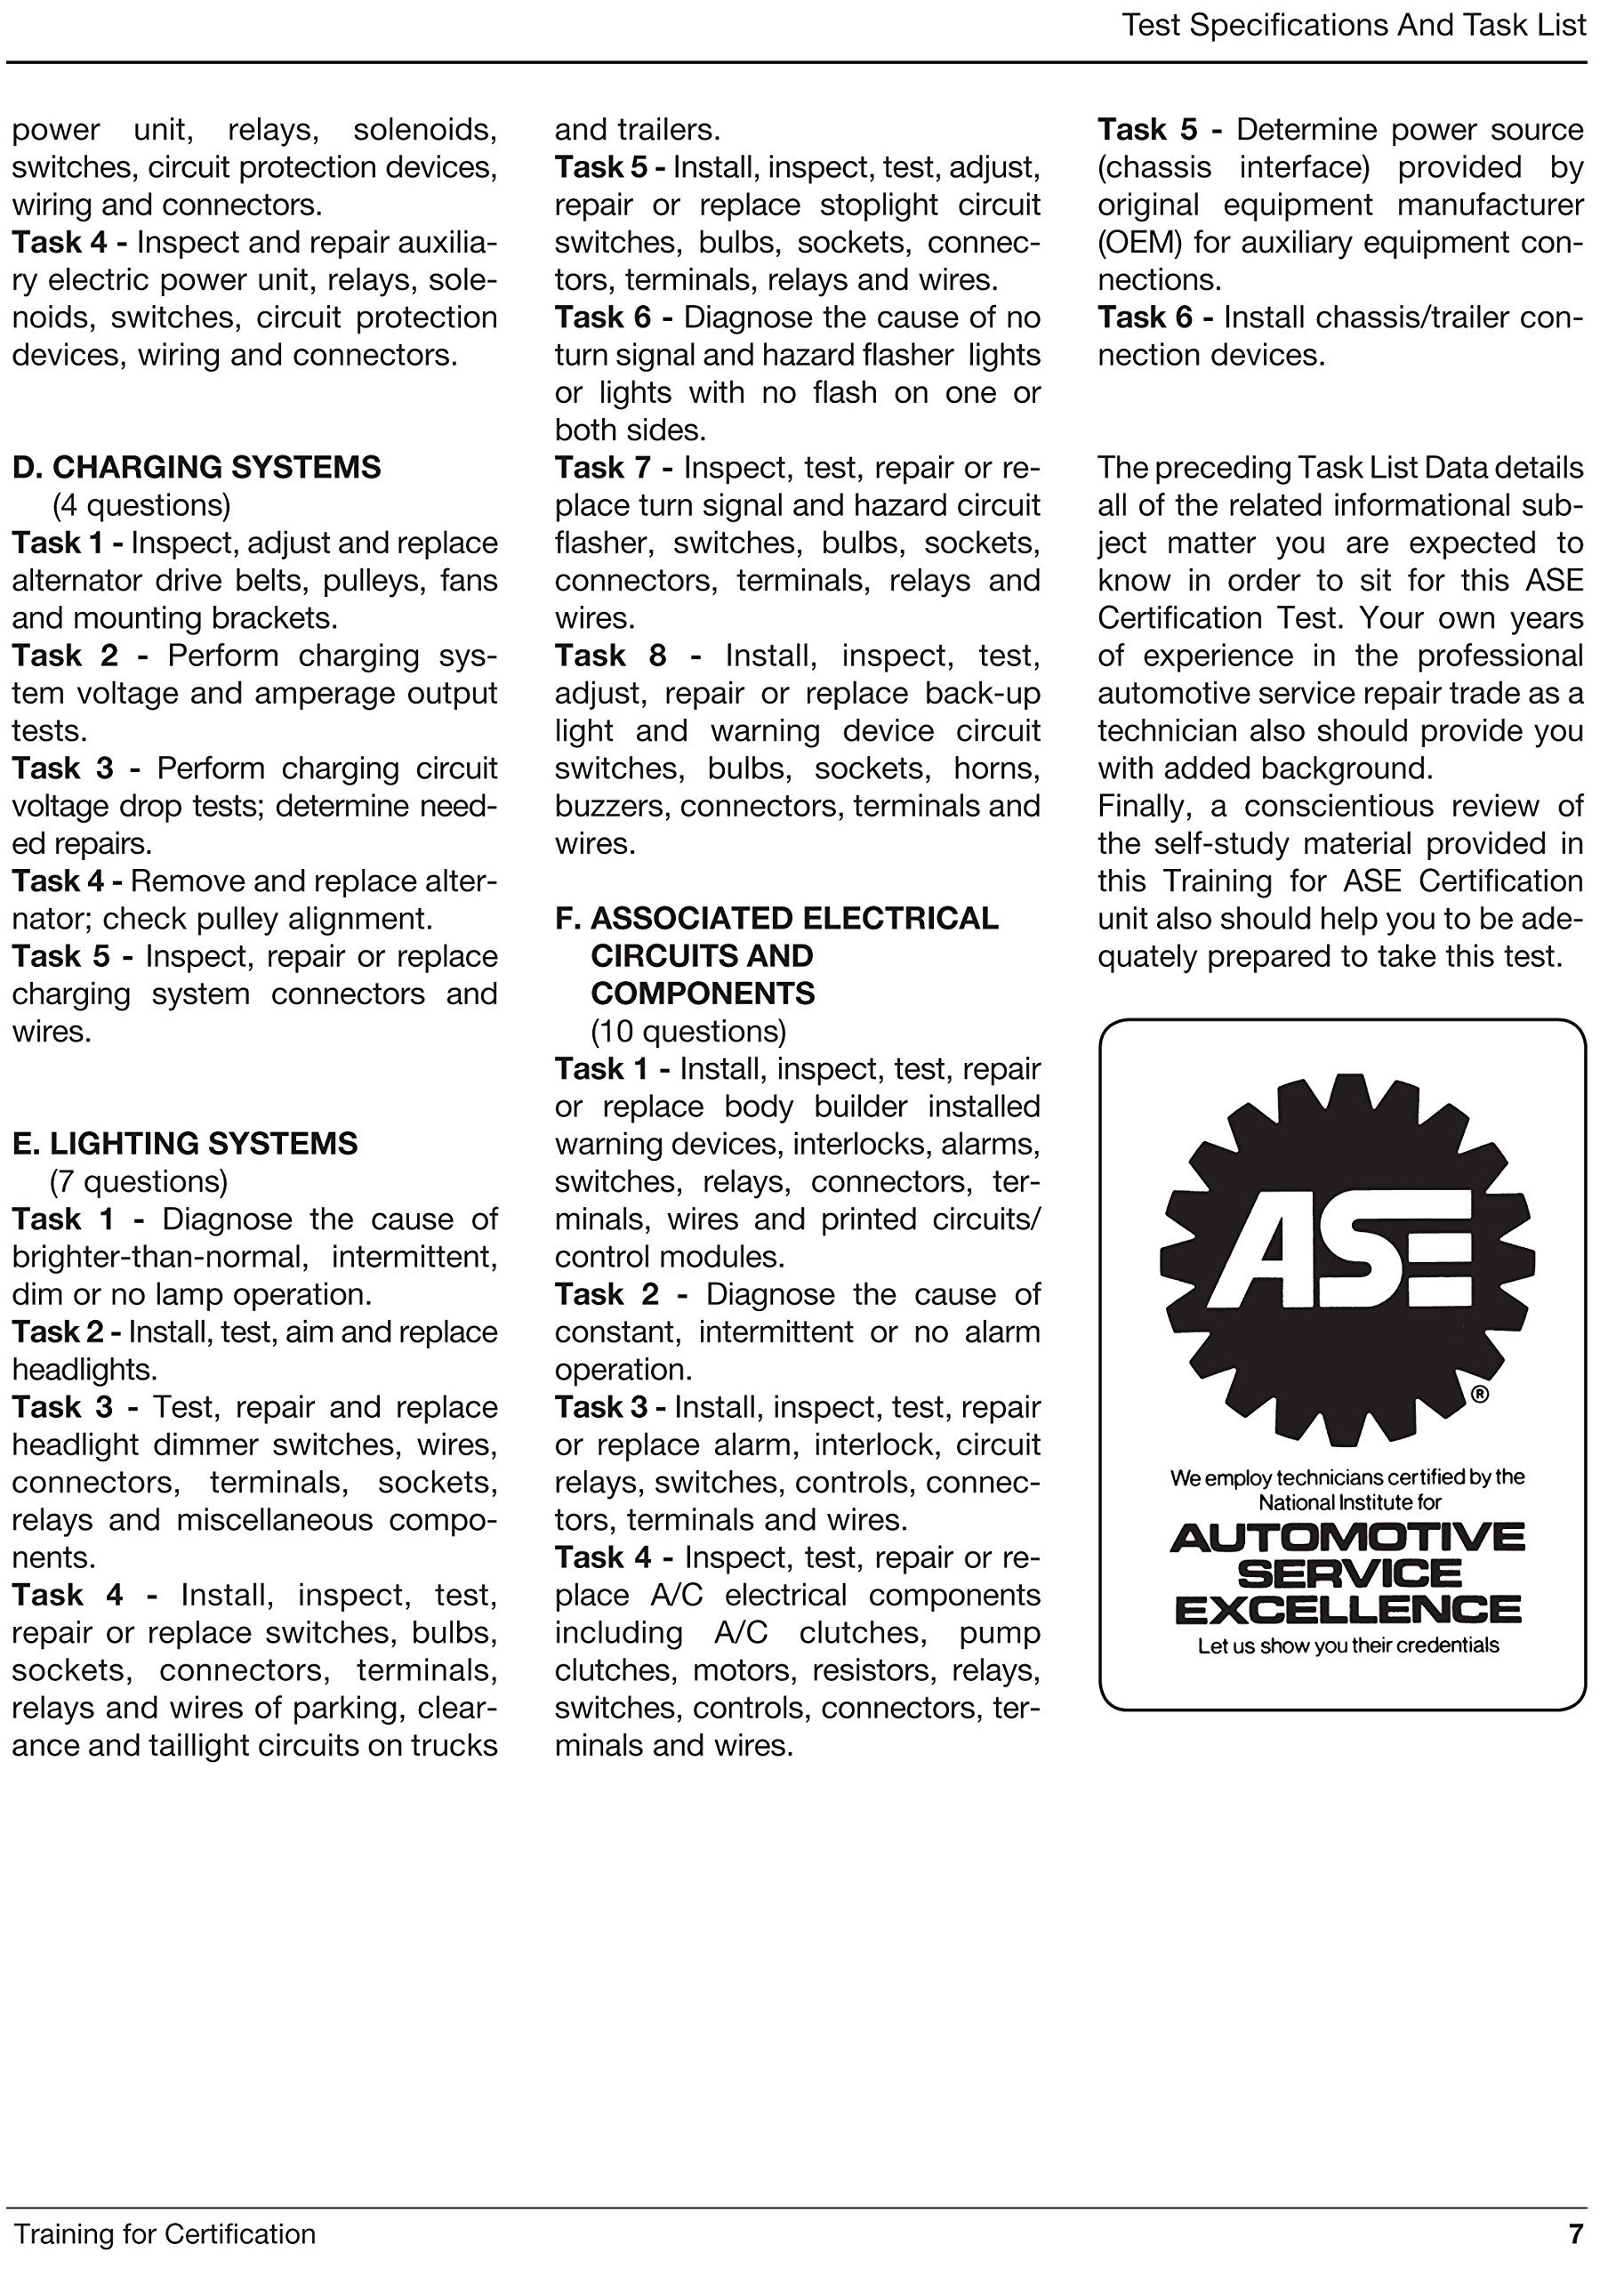 Ase Certification Test Preparation E2 Electrical Electronic Circuits Automotive Training And Systems Installation Repair Study Guide Motor Age Staff 9781933180168 Books